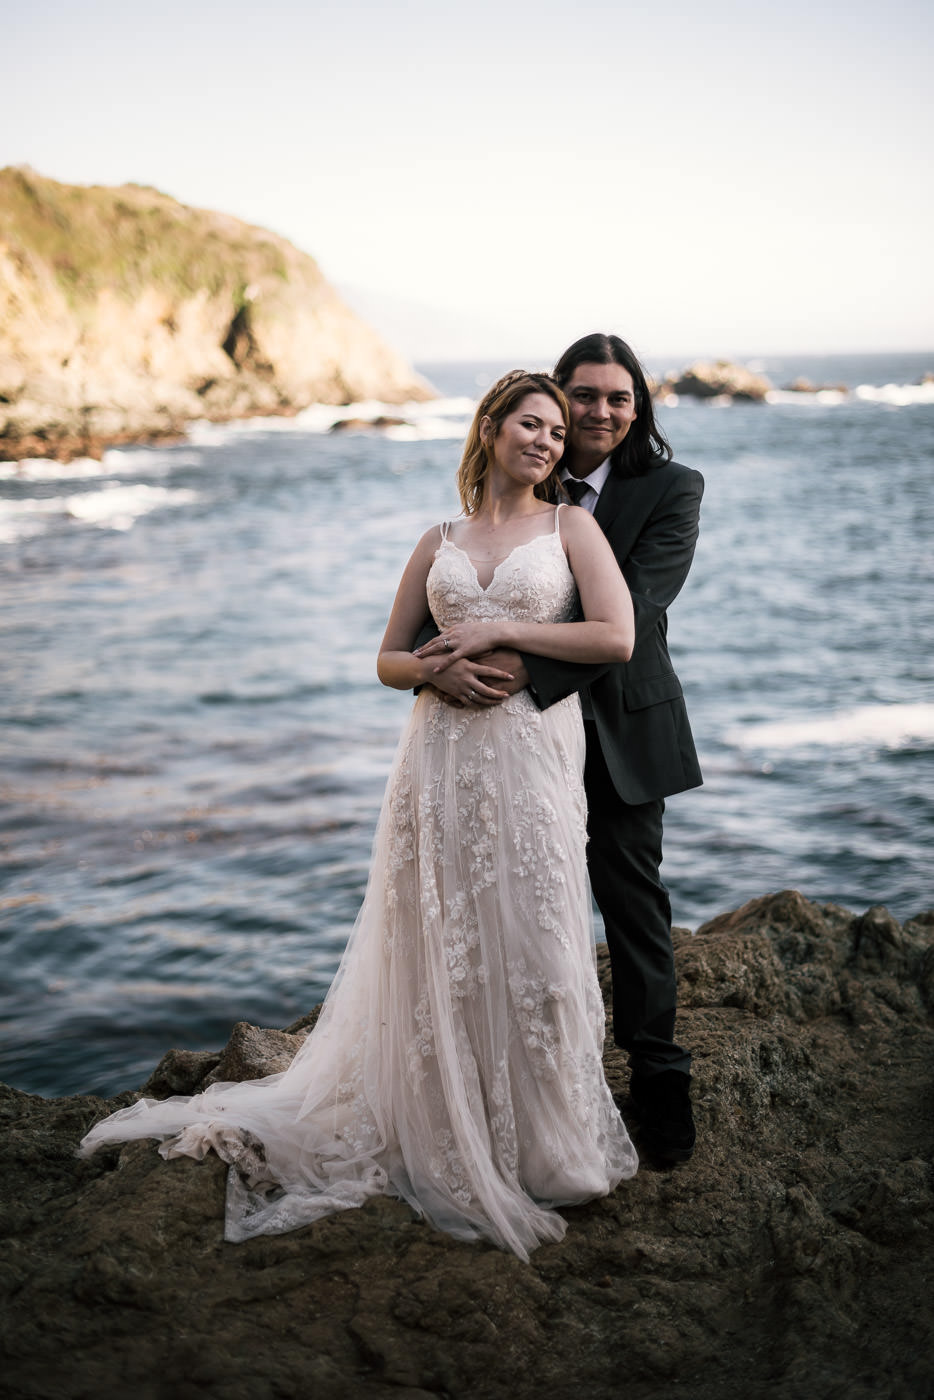 Beautiful Portrait of a married couple on the coast of California.